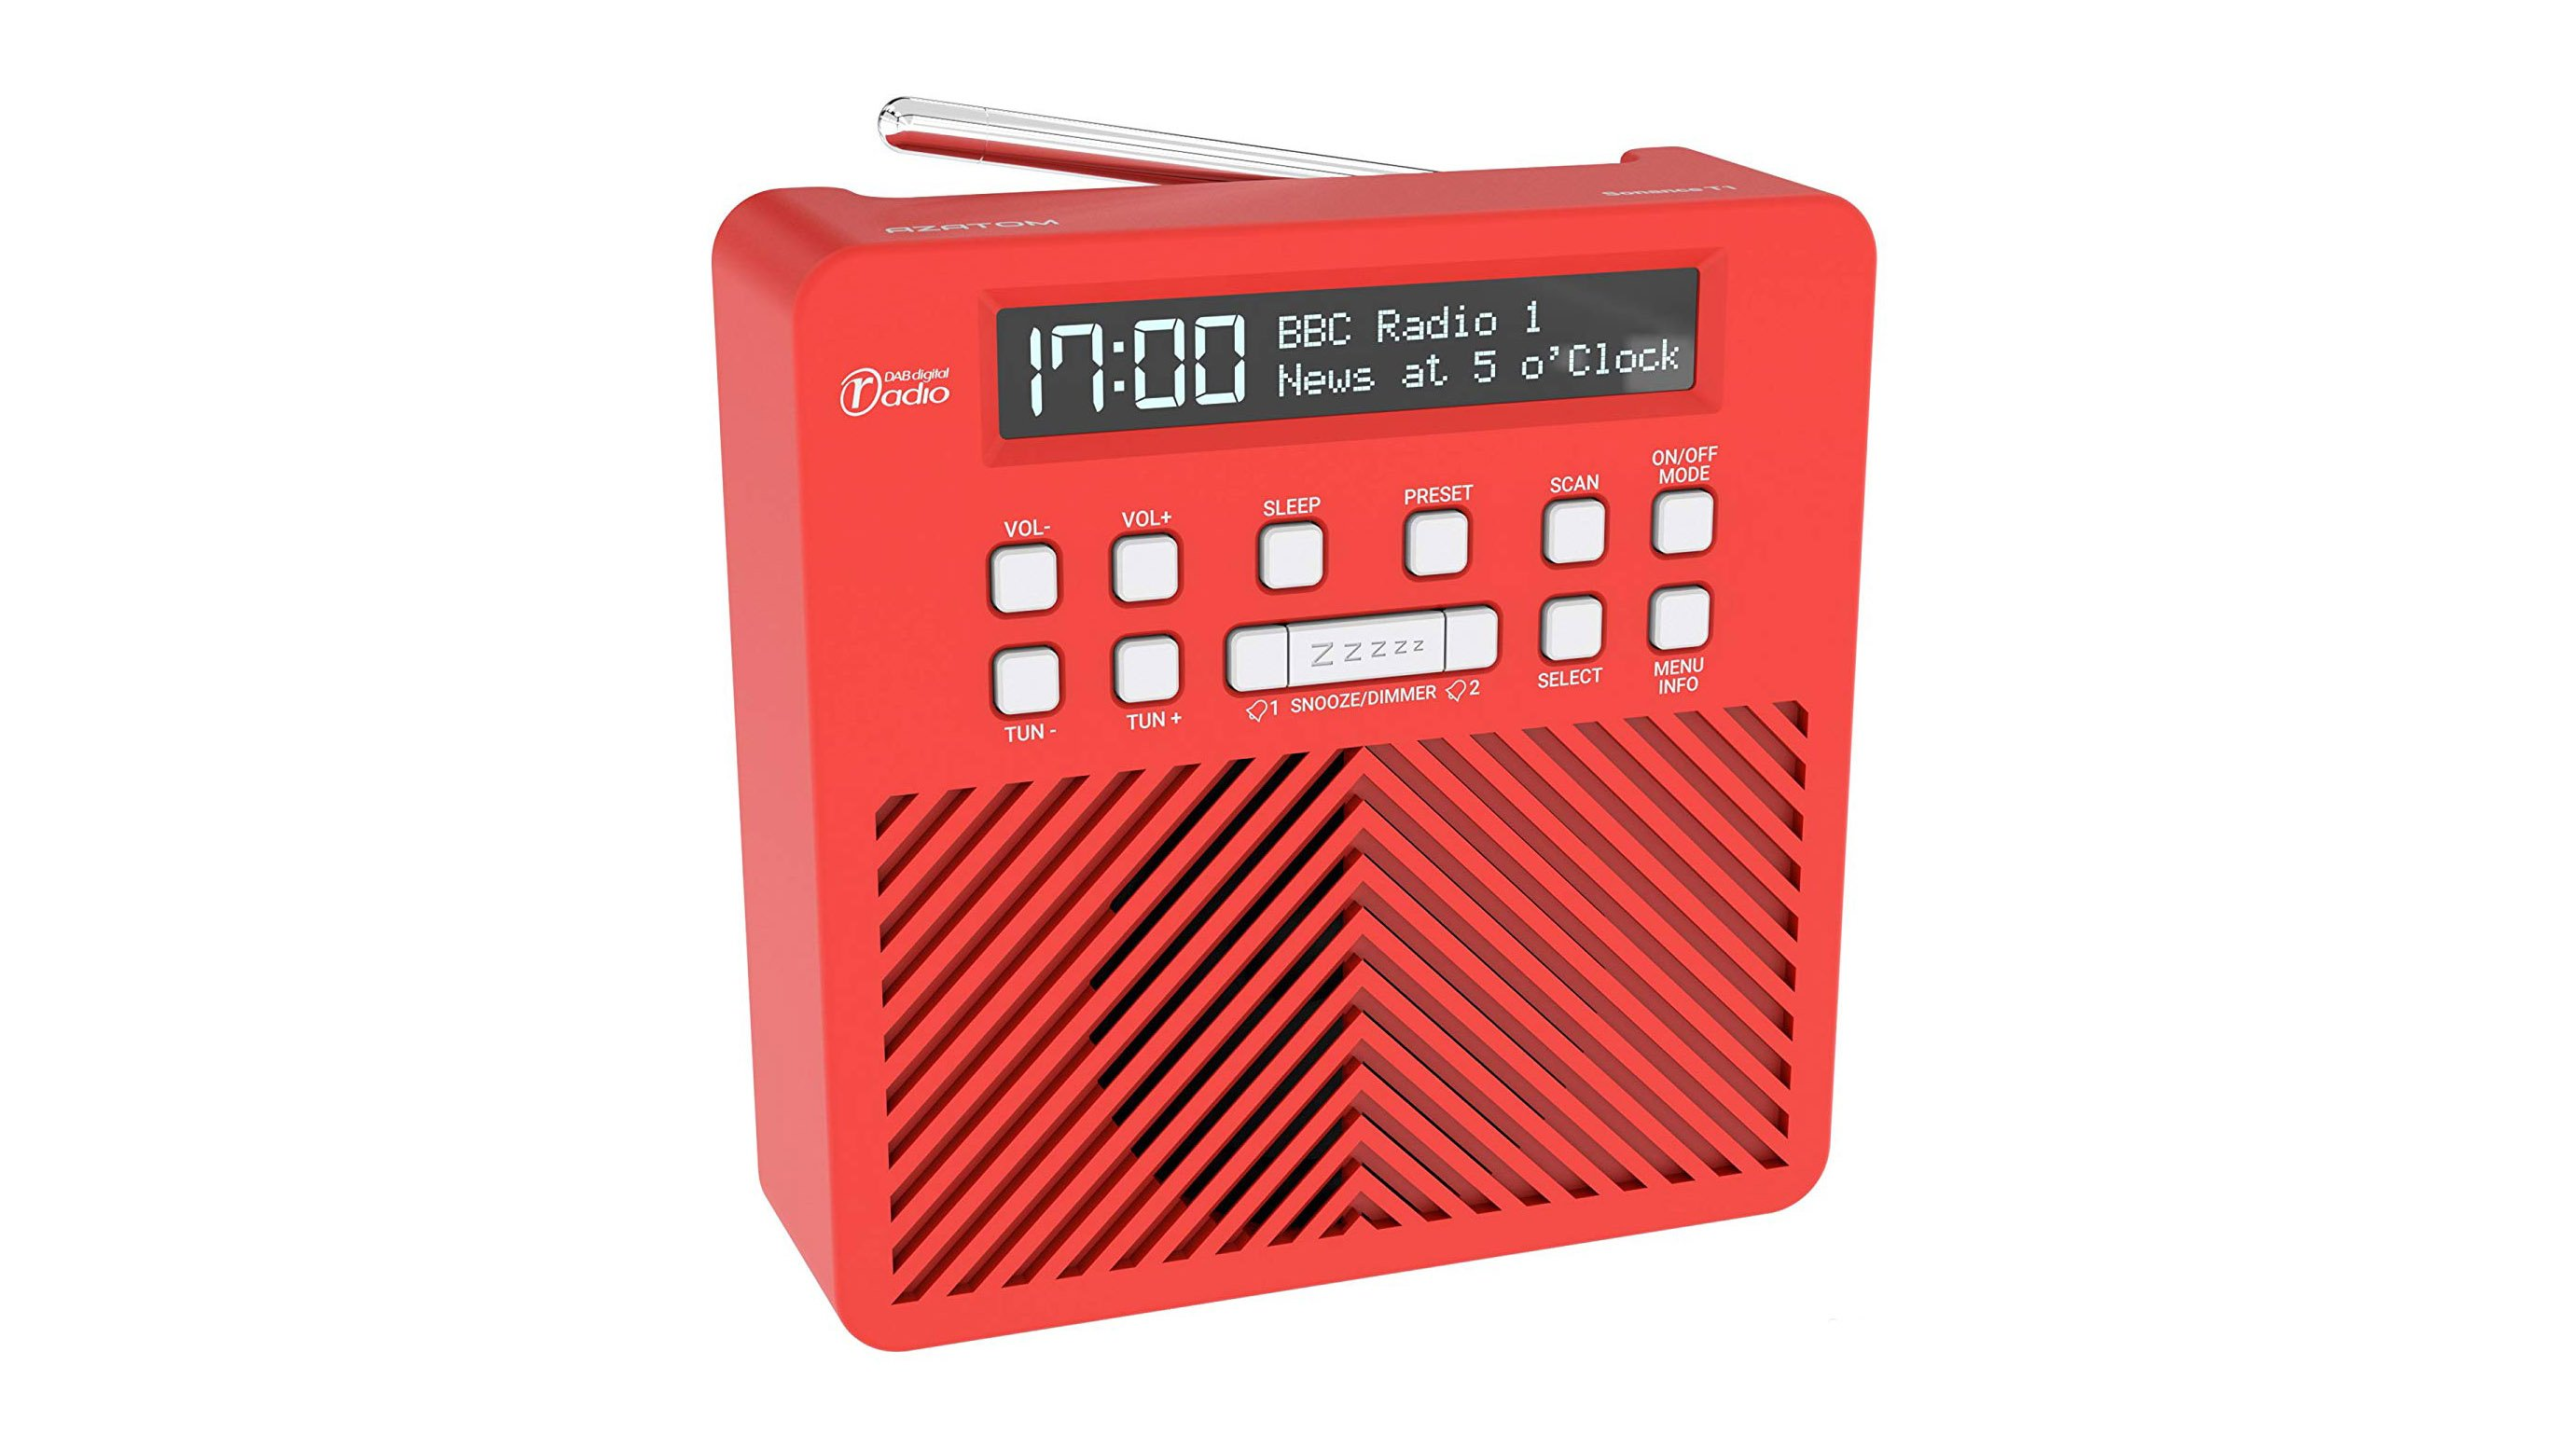 Best Dab Radio 2018 The Digital Radios You Can Buy From 29 Low Cost Am Its Not Exactly Last Word In Looks Or Sound Quality But If Youre Looking For A Cheap And Cheerful Wont Do Much Better Than Sonance